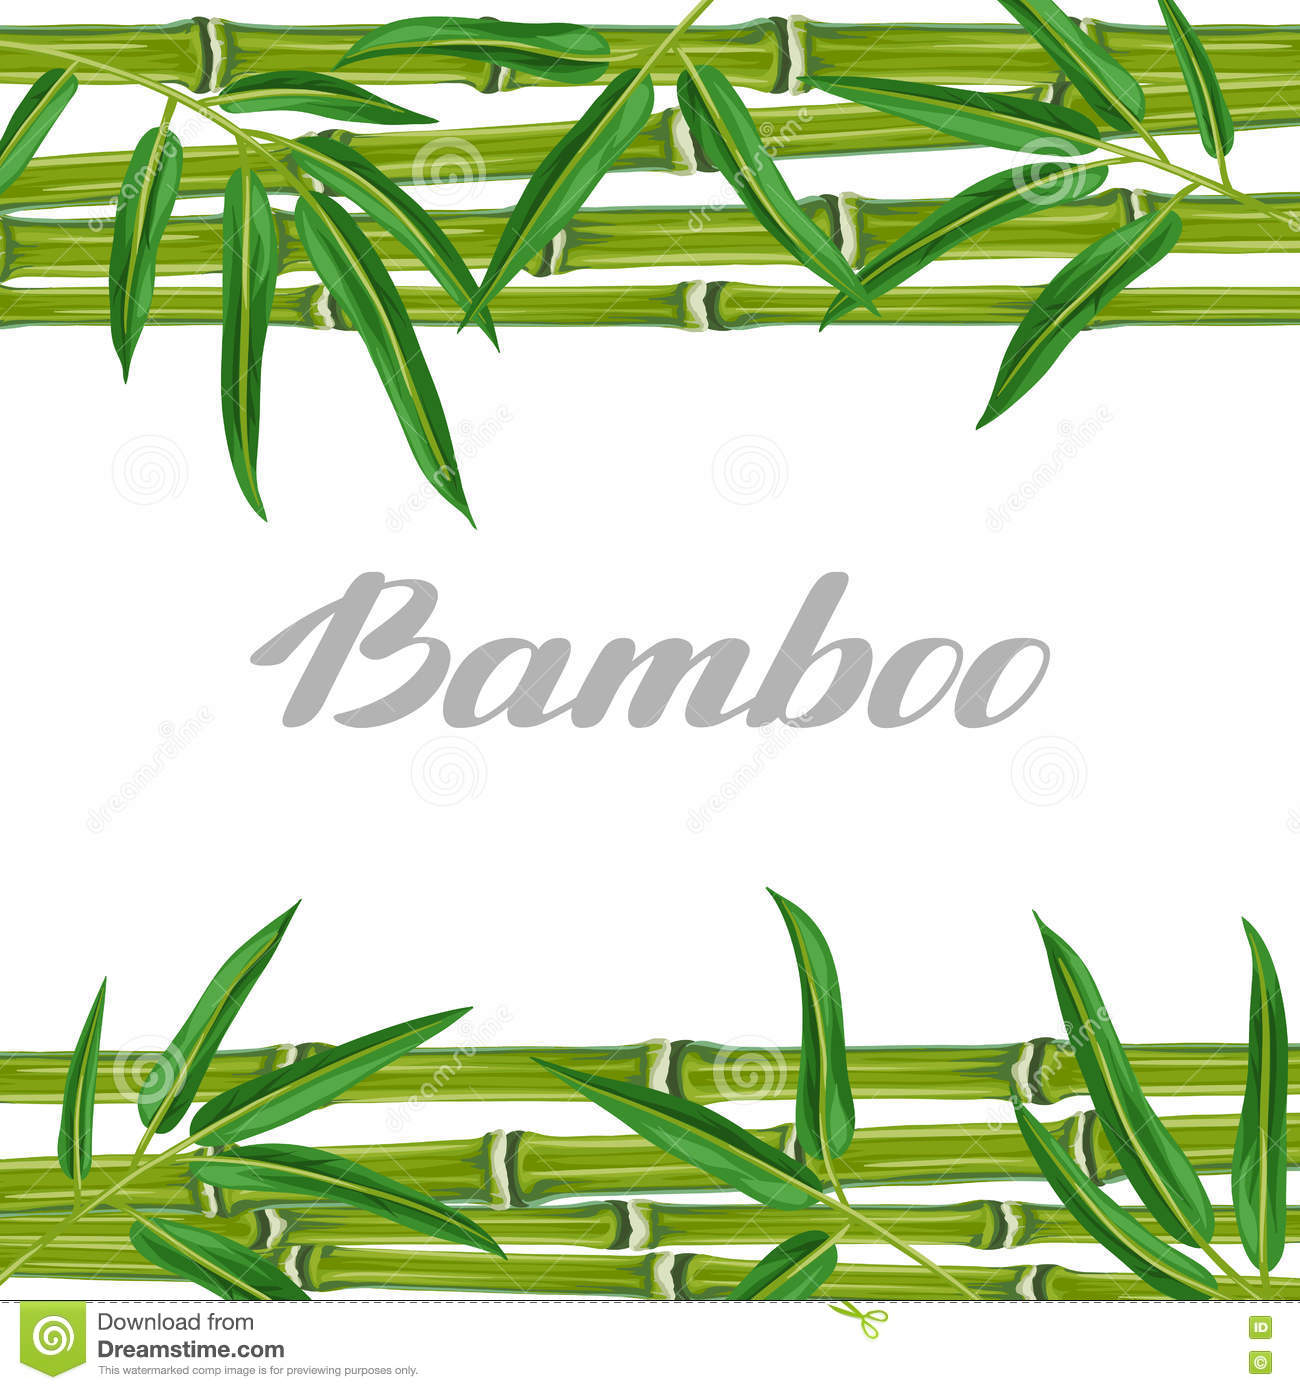 Background With Bamboo Plants And Leaves. Image For Holiday ...